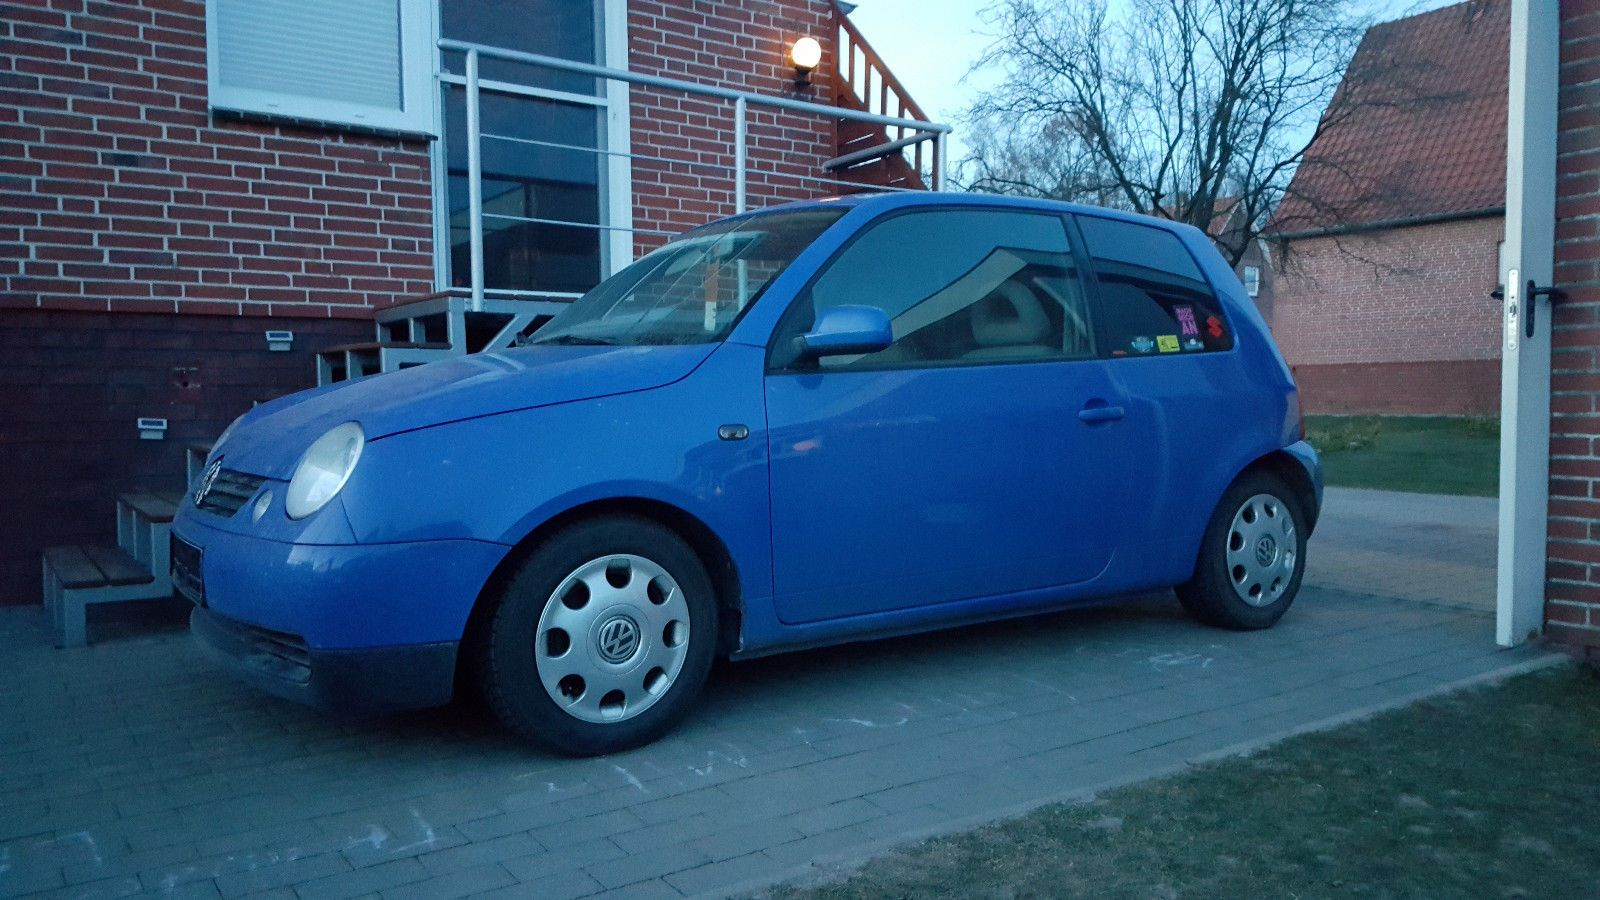 Vw lupo 80000km tv 0519 50ps onlineshop pinterest vw and vw lupo 80000km tv 0519 50ps fandeluxe Gallery